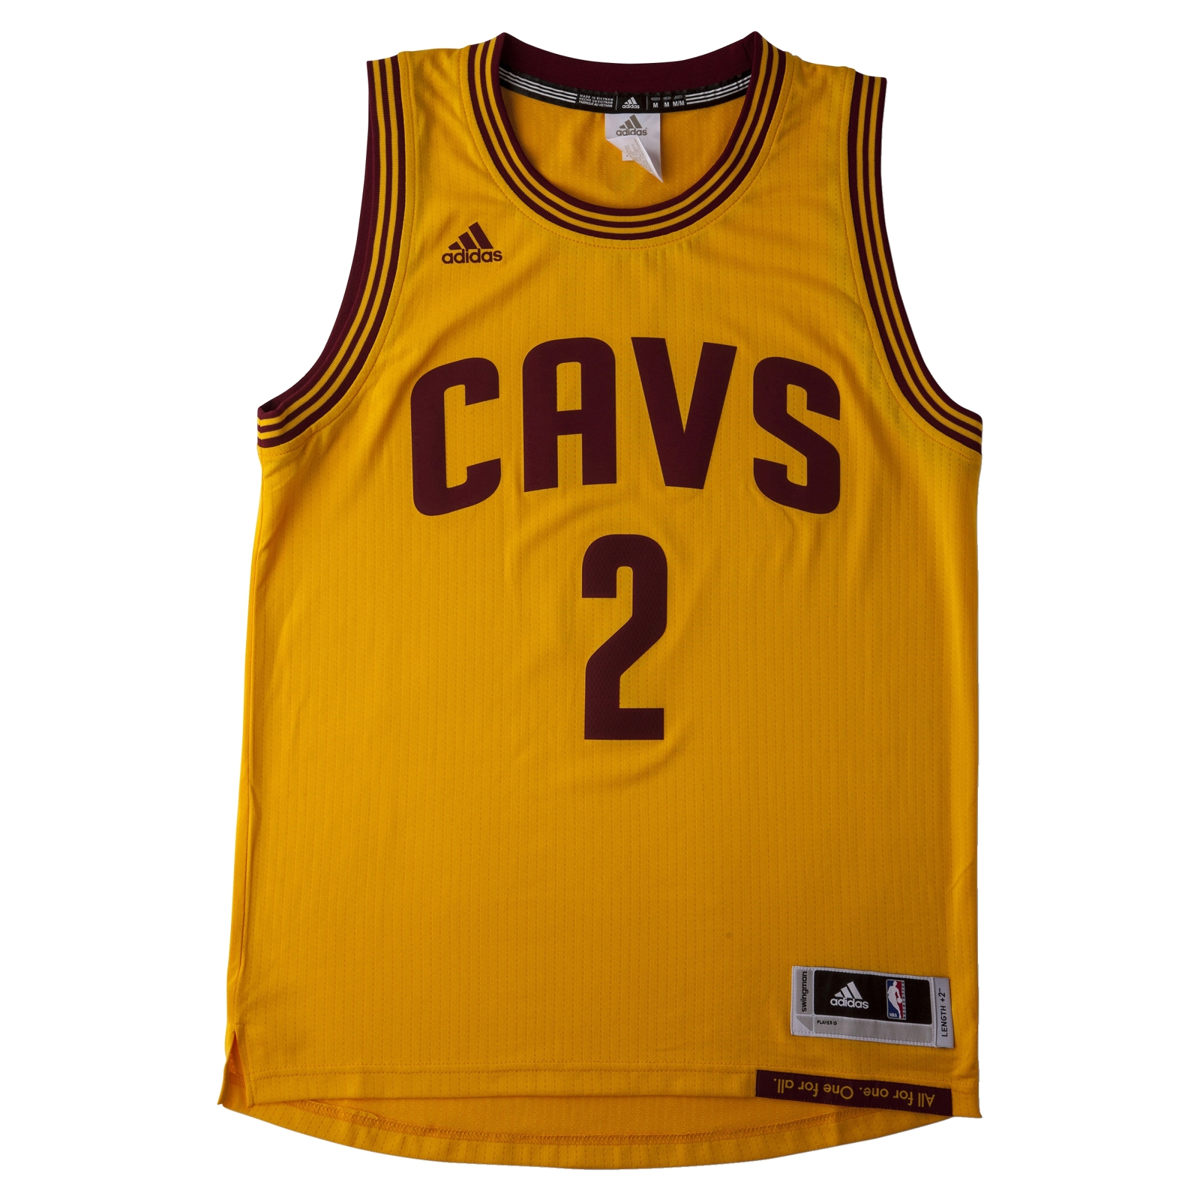 separation shoes c17d6 70148 Adidas NBA Cleveland Cavaliers Swingman 2 Kyrie Irving Jersey - A45826